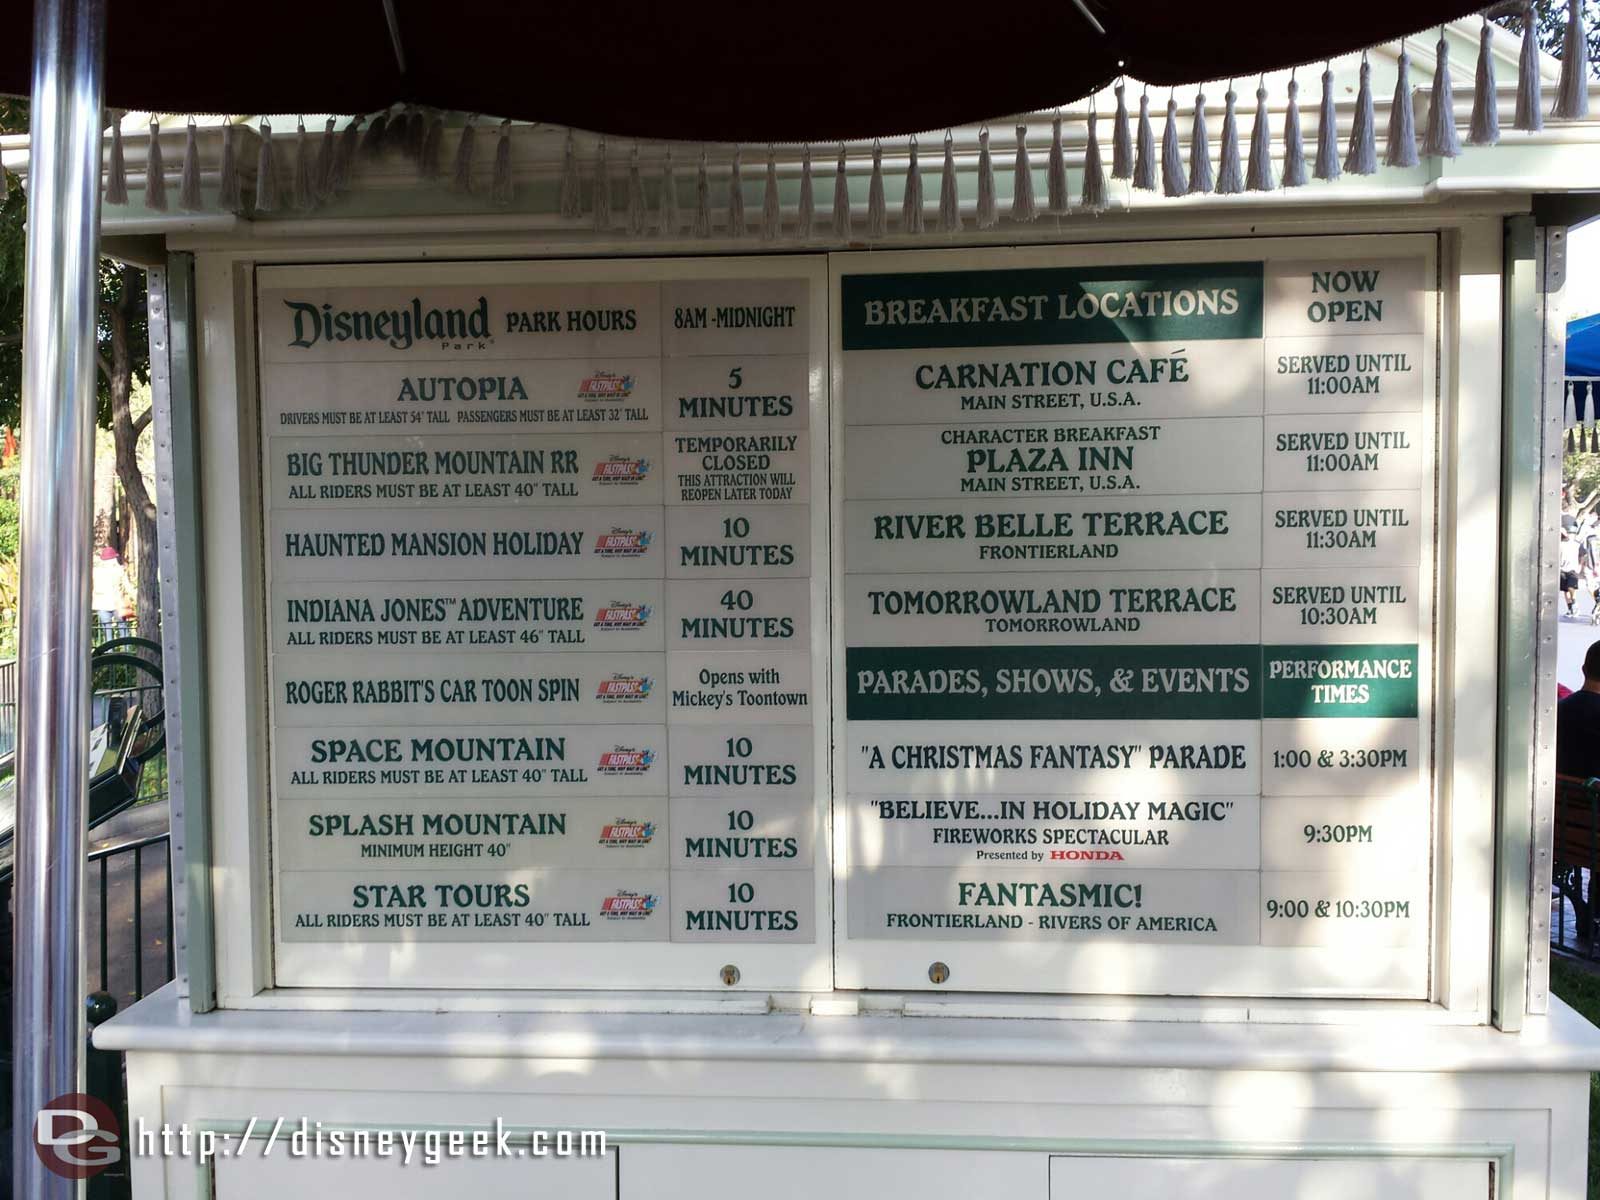 #Disneyland wait times as of 9:02am